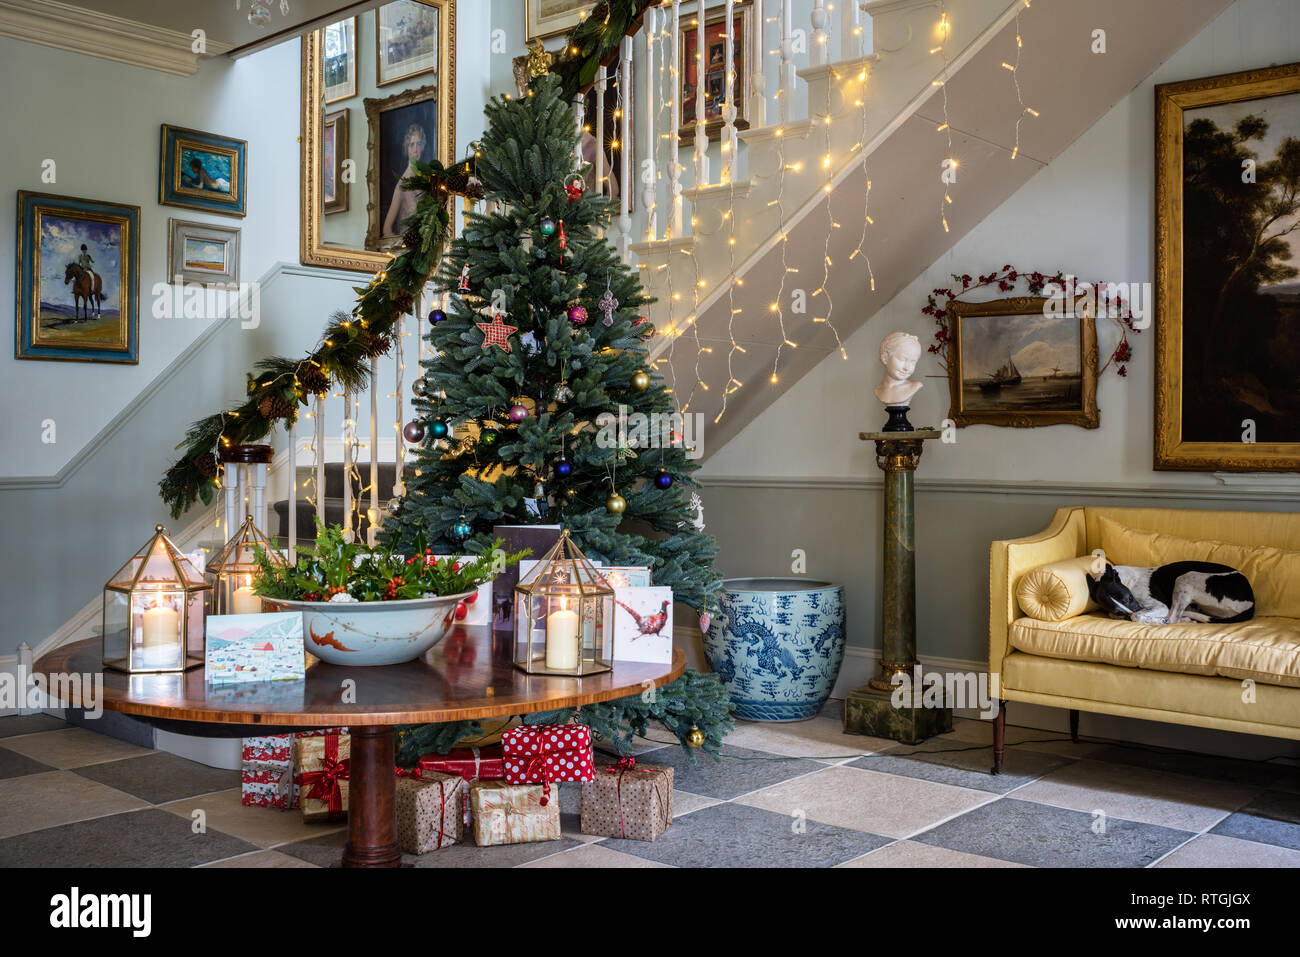 Whippet lies on yellow sofa in grand entrance hall with staircase built by Geraghty Joinery and artificial Royal Blue Spruce Christmas tree - Stock Image